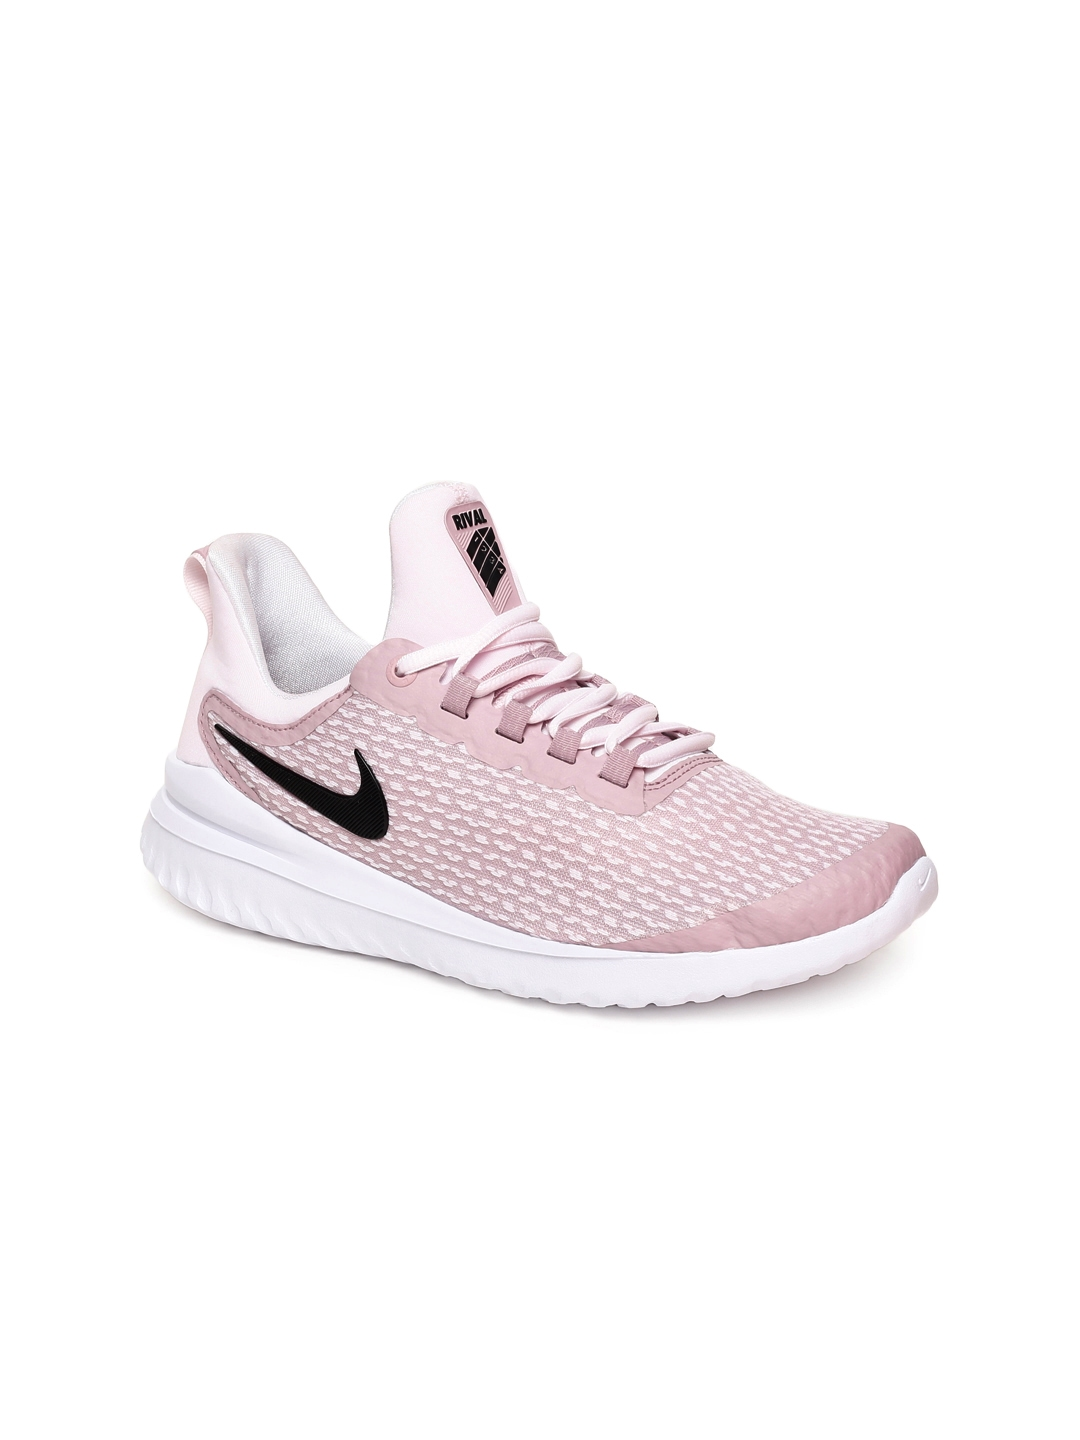 the latest 4f1ff a8e94 Nike Women Pink Renew Rival Running Shoes